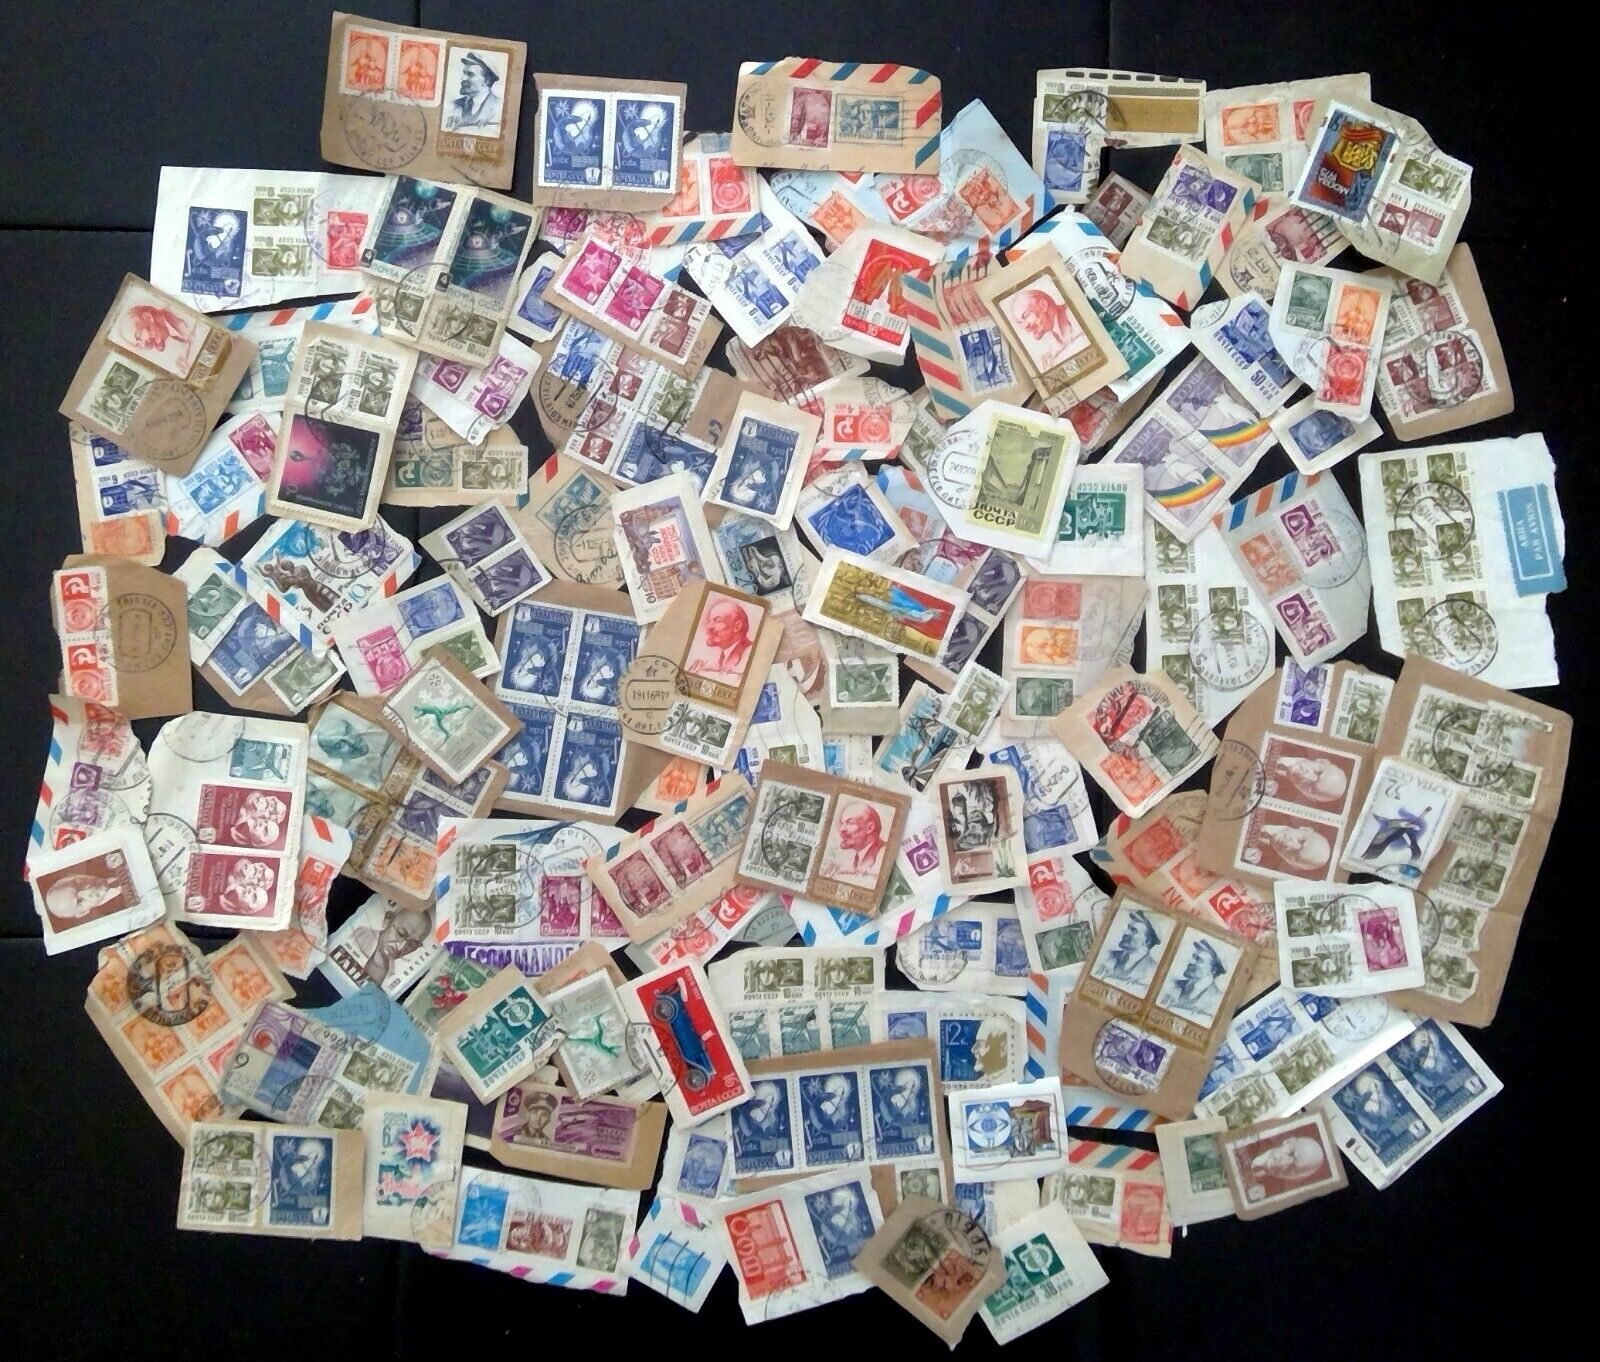 Over 250 Russia CCCP Used Canceled Postage Stamps On Paper Over 100 Pieces 1.3oz - $9.95